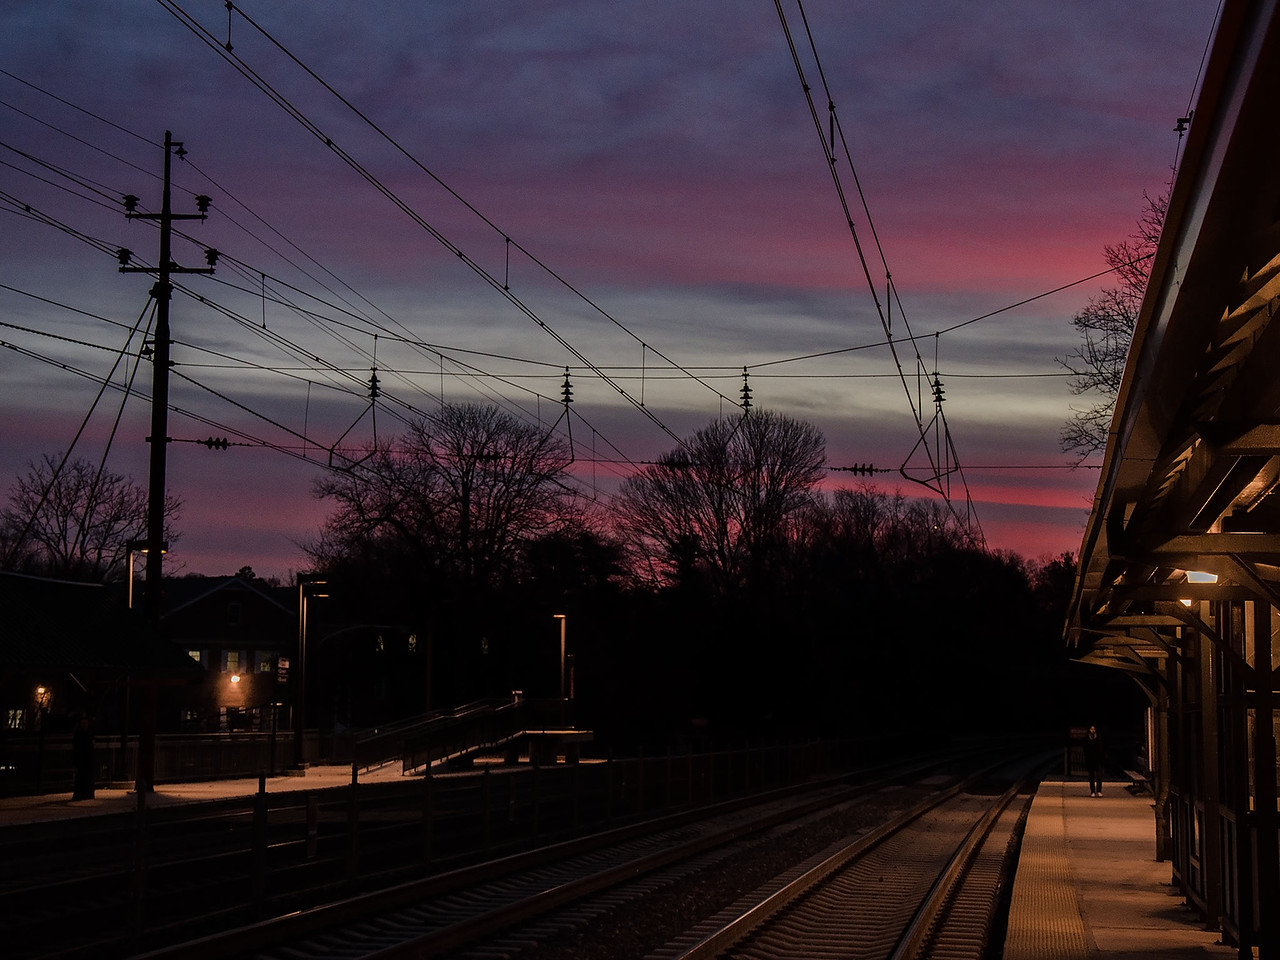 Radnor Station Sunset - 2048 pixels